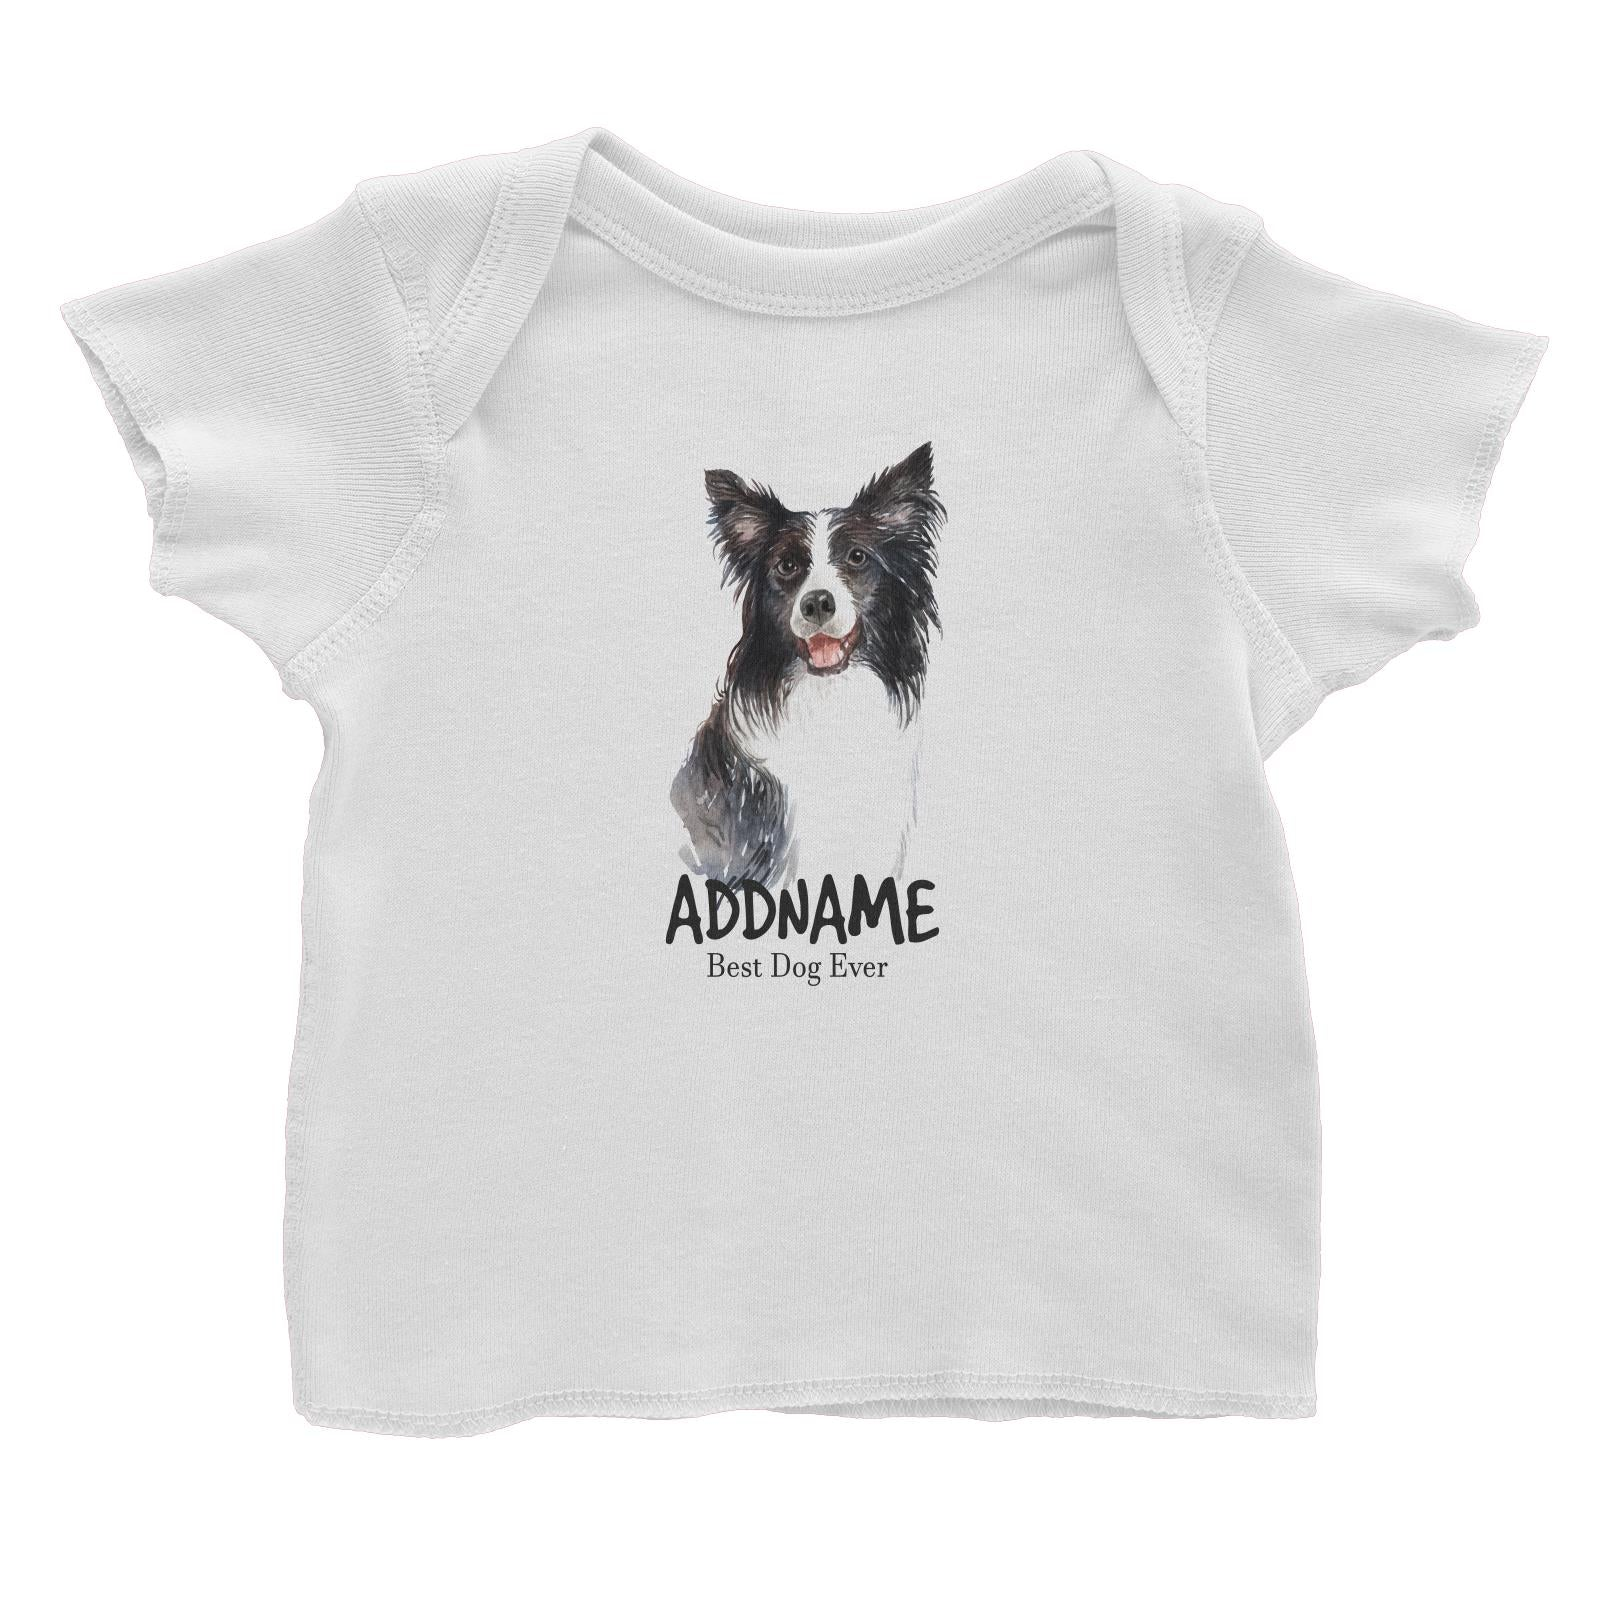 Come In All Sizes But The Standard Unisex T-shirt Best Friends Border Collie